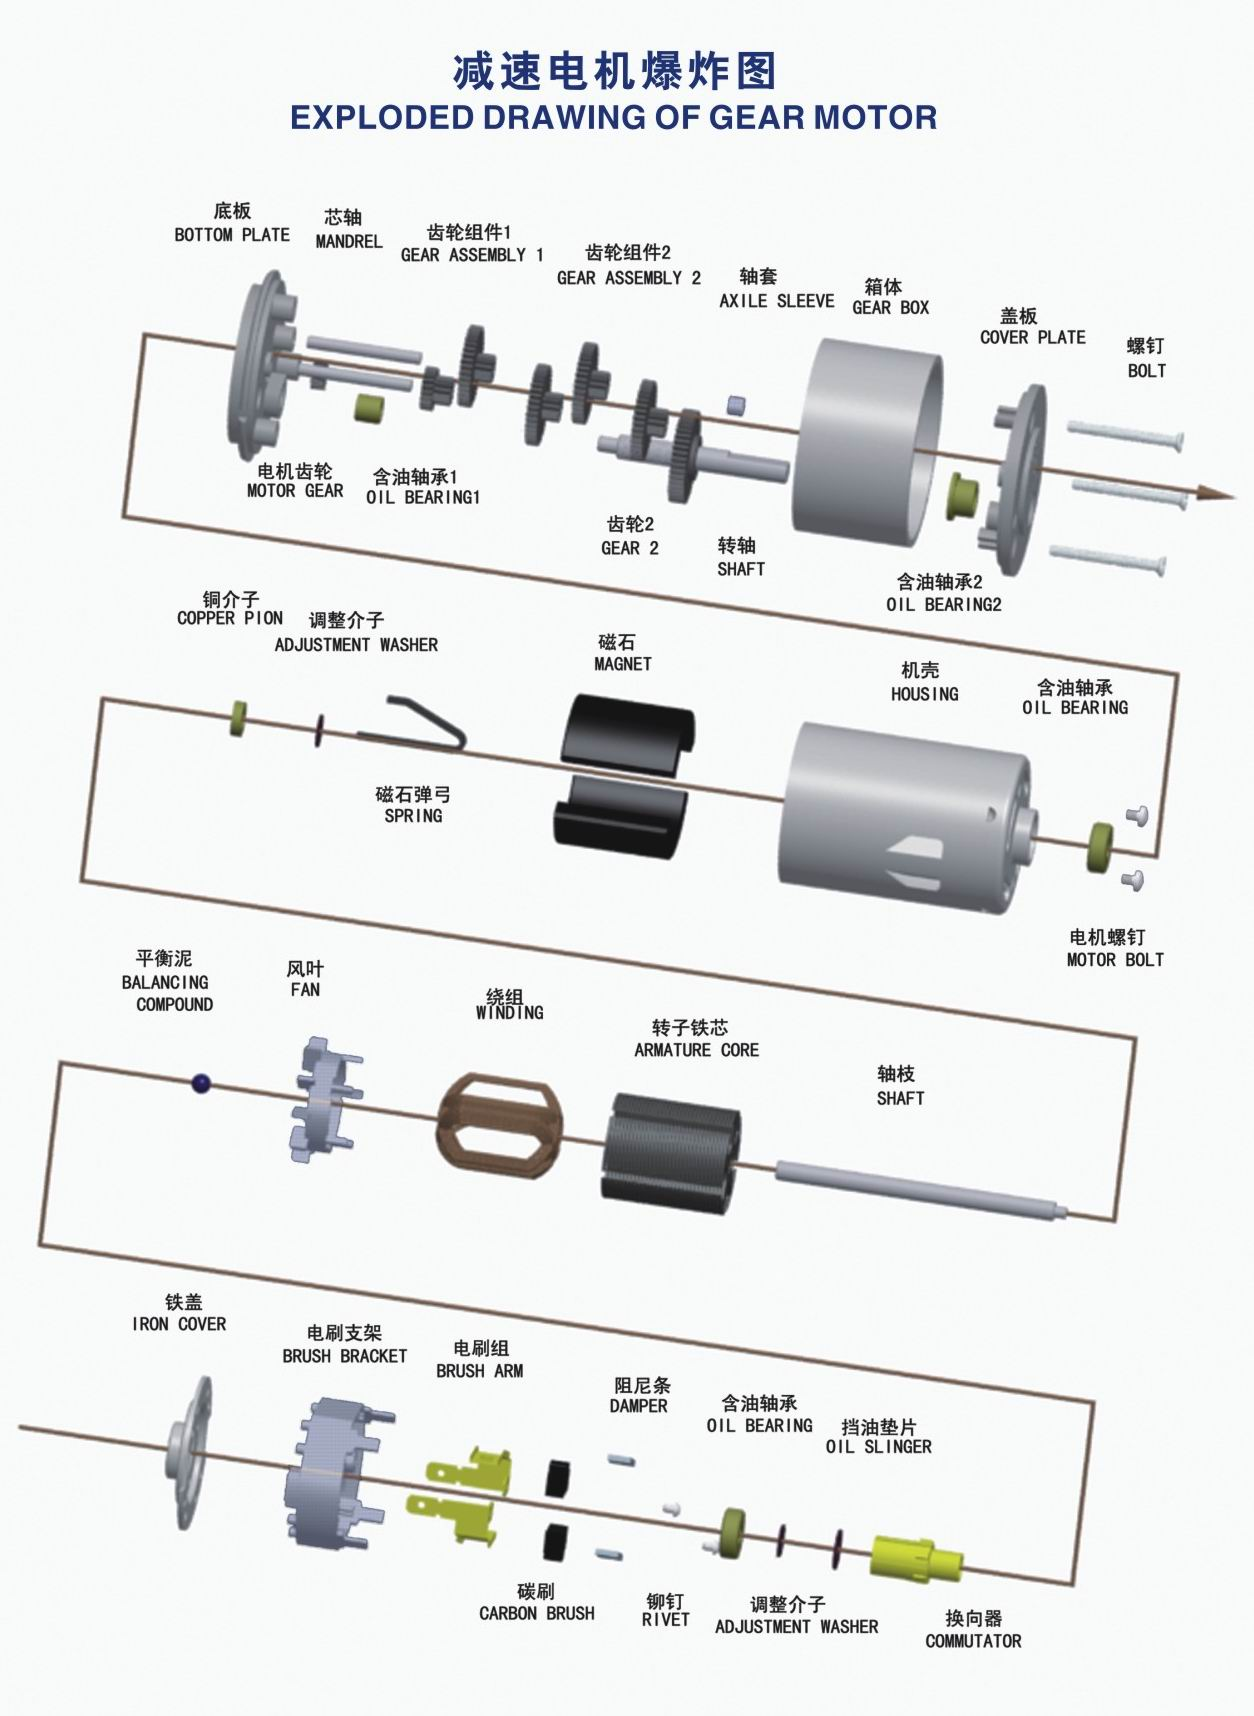 Dc motor theory stepper motor theory max motor motor structure pooptronica Choice Image